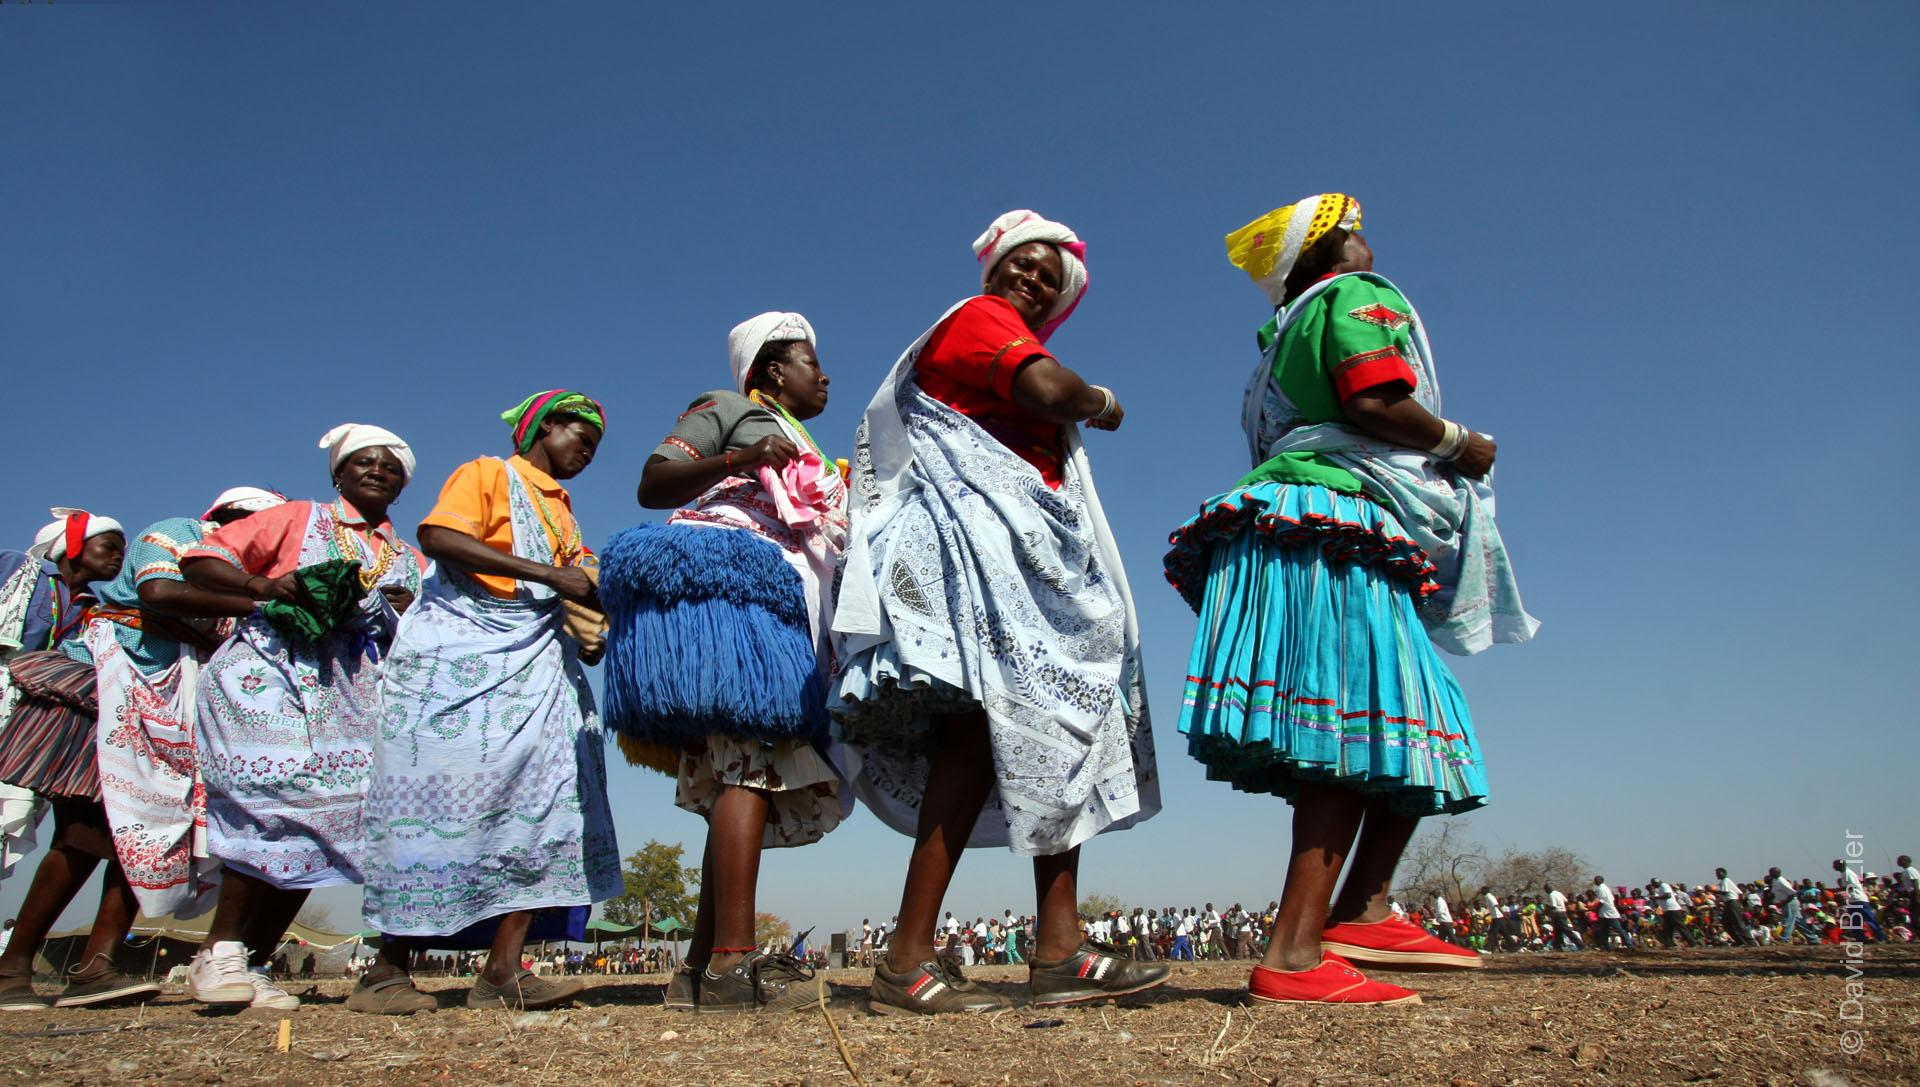 Shangaan women dancing during festival in Chiredzi, Zimbabwe